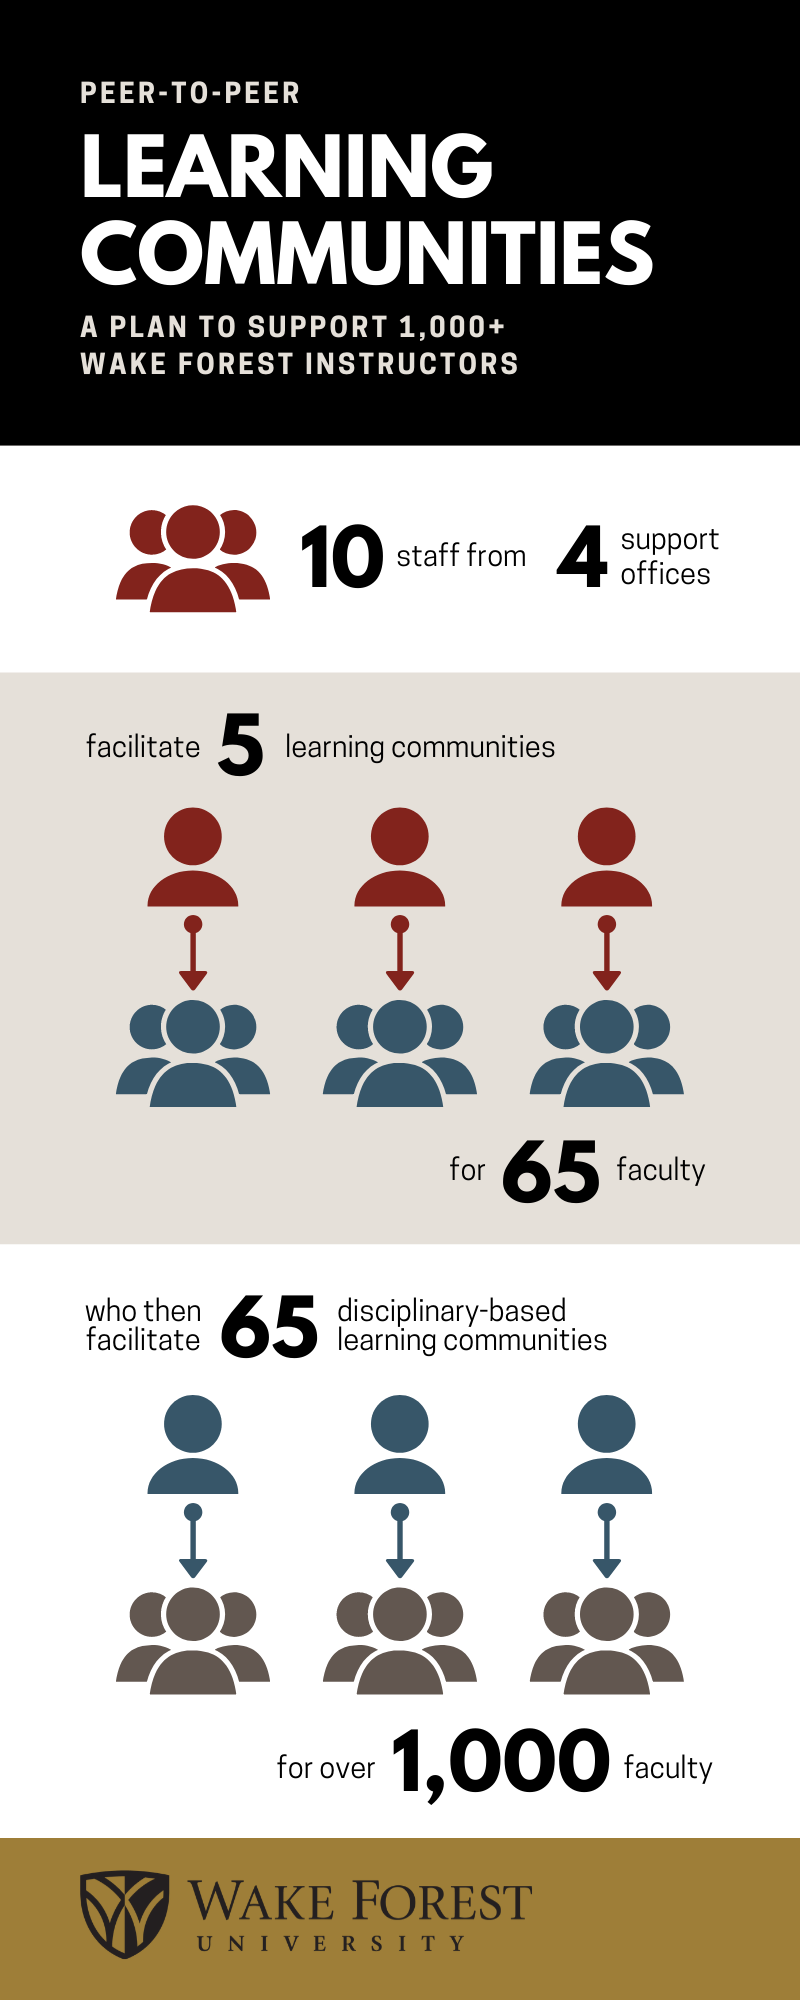 Graphic of Peer-to-Peer learning community structure. 10 staff from 4 support offices facilitate 5 learning communities for 65 faculty who then facilitate 65 learning communities for over 1,000 instructors.